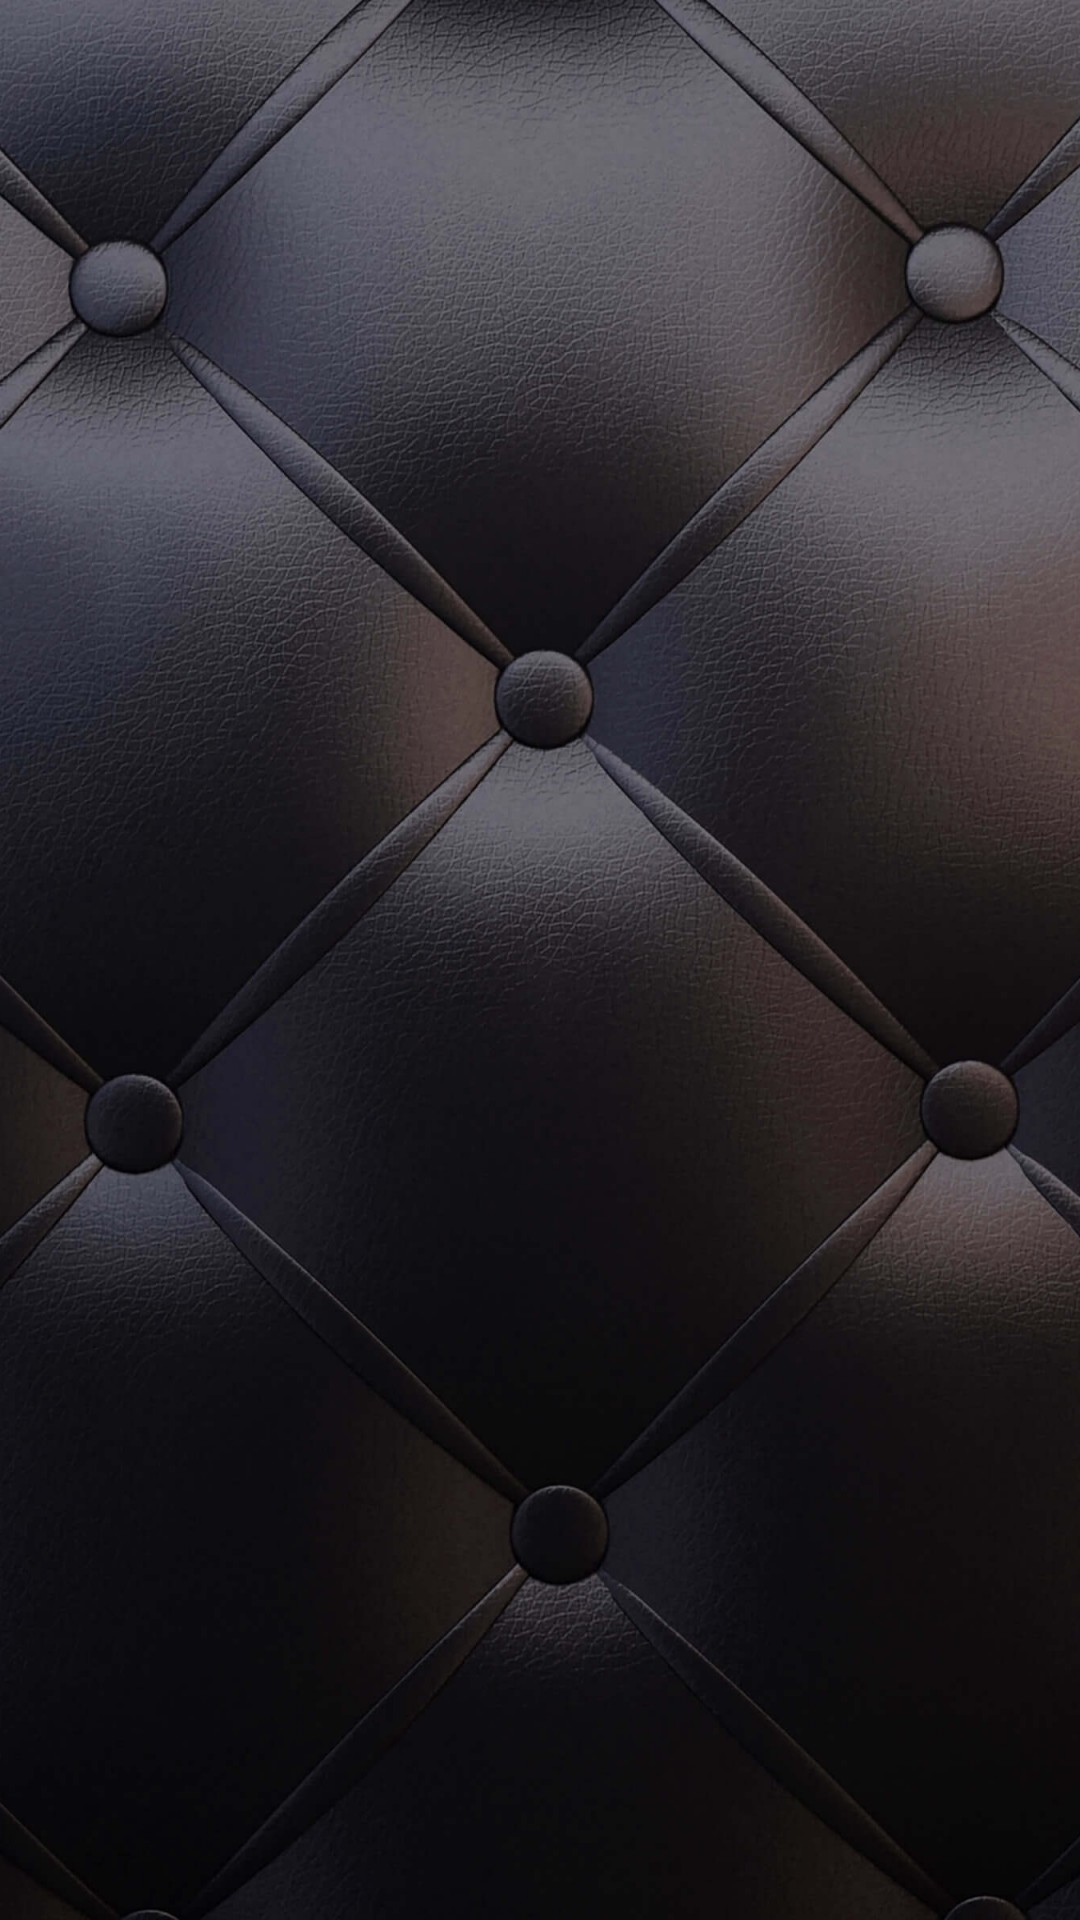 Black leather vintage sofa hd wallpaper for galaxy s5 hdwallpapers